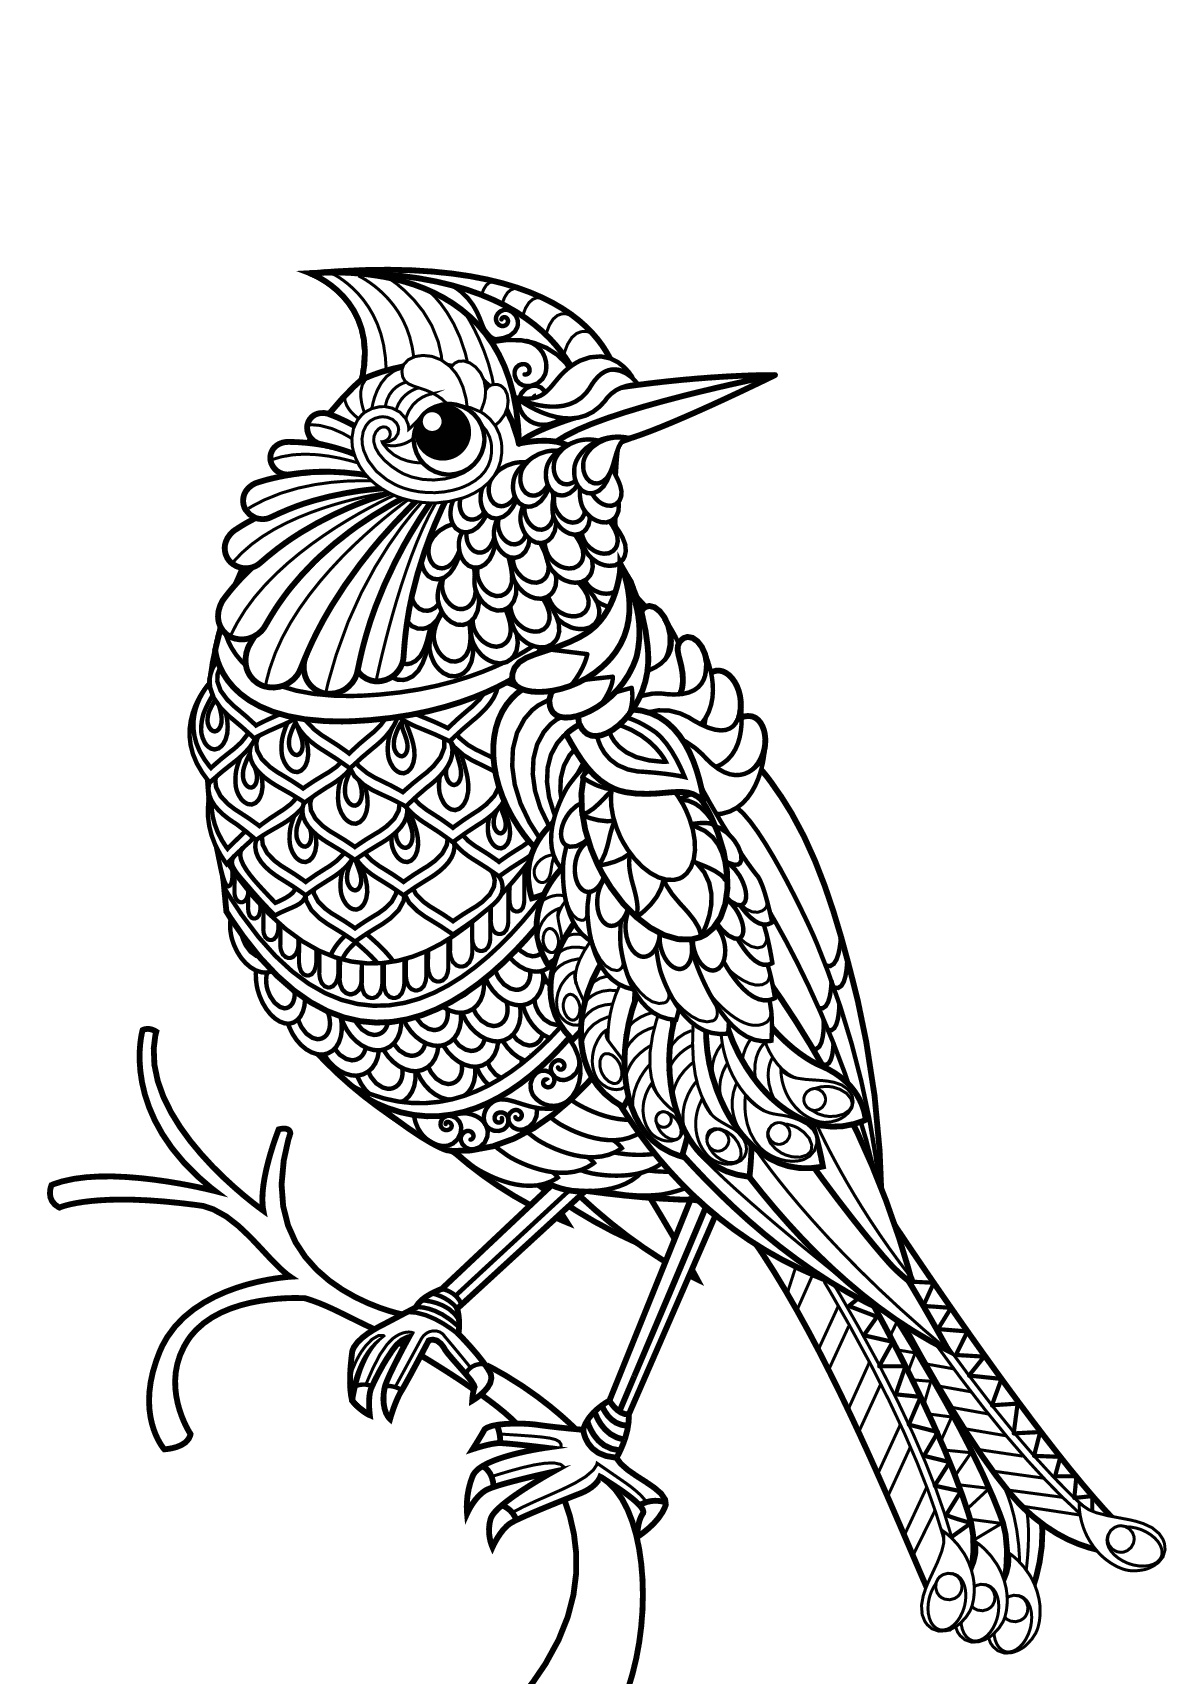 coloring pages for kids birds cute bird coloring pages for coloring pages birds kids